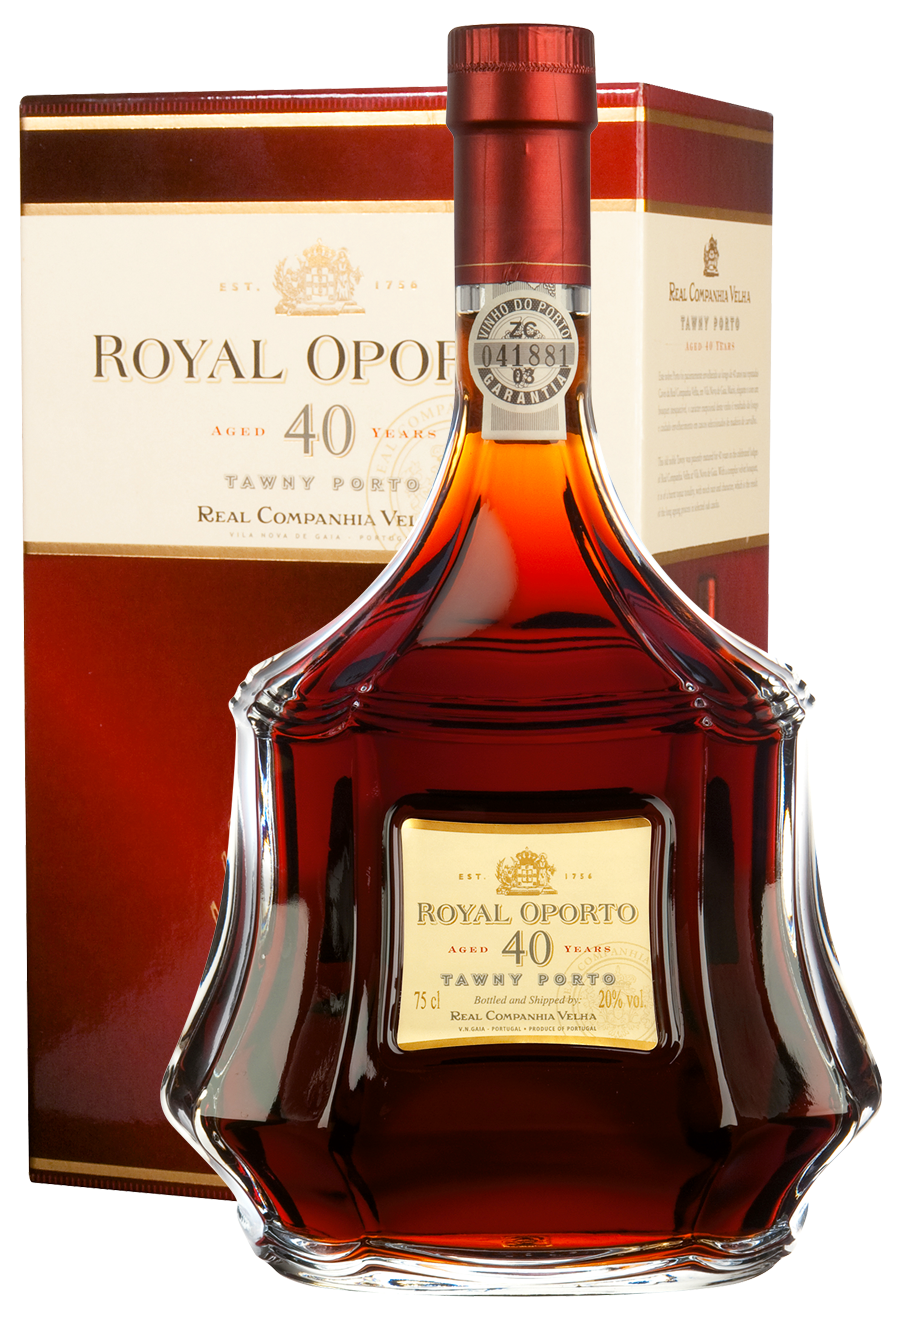 Royal Oporto Over 40 Years aged Tawny